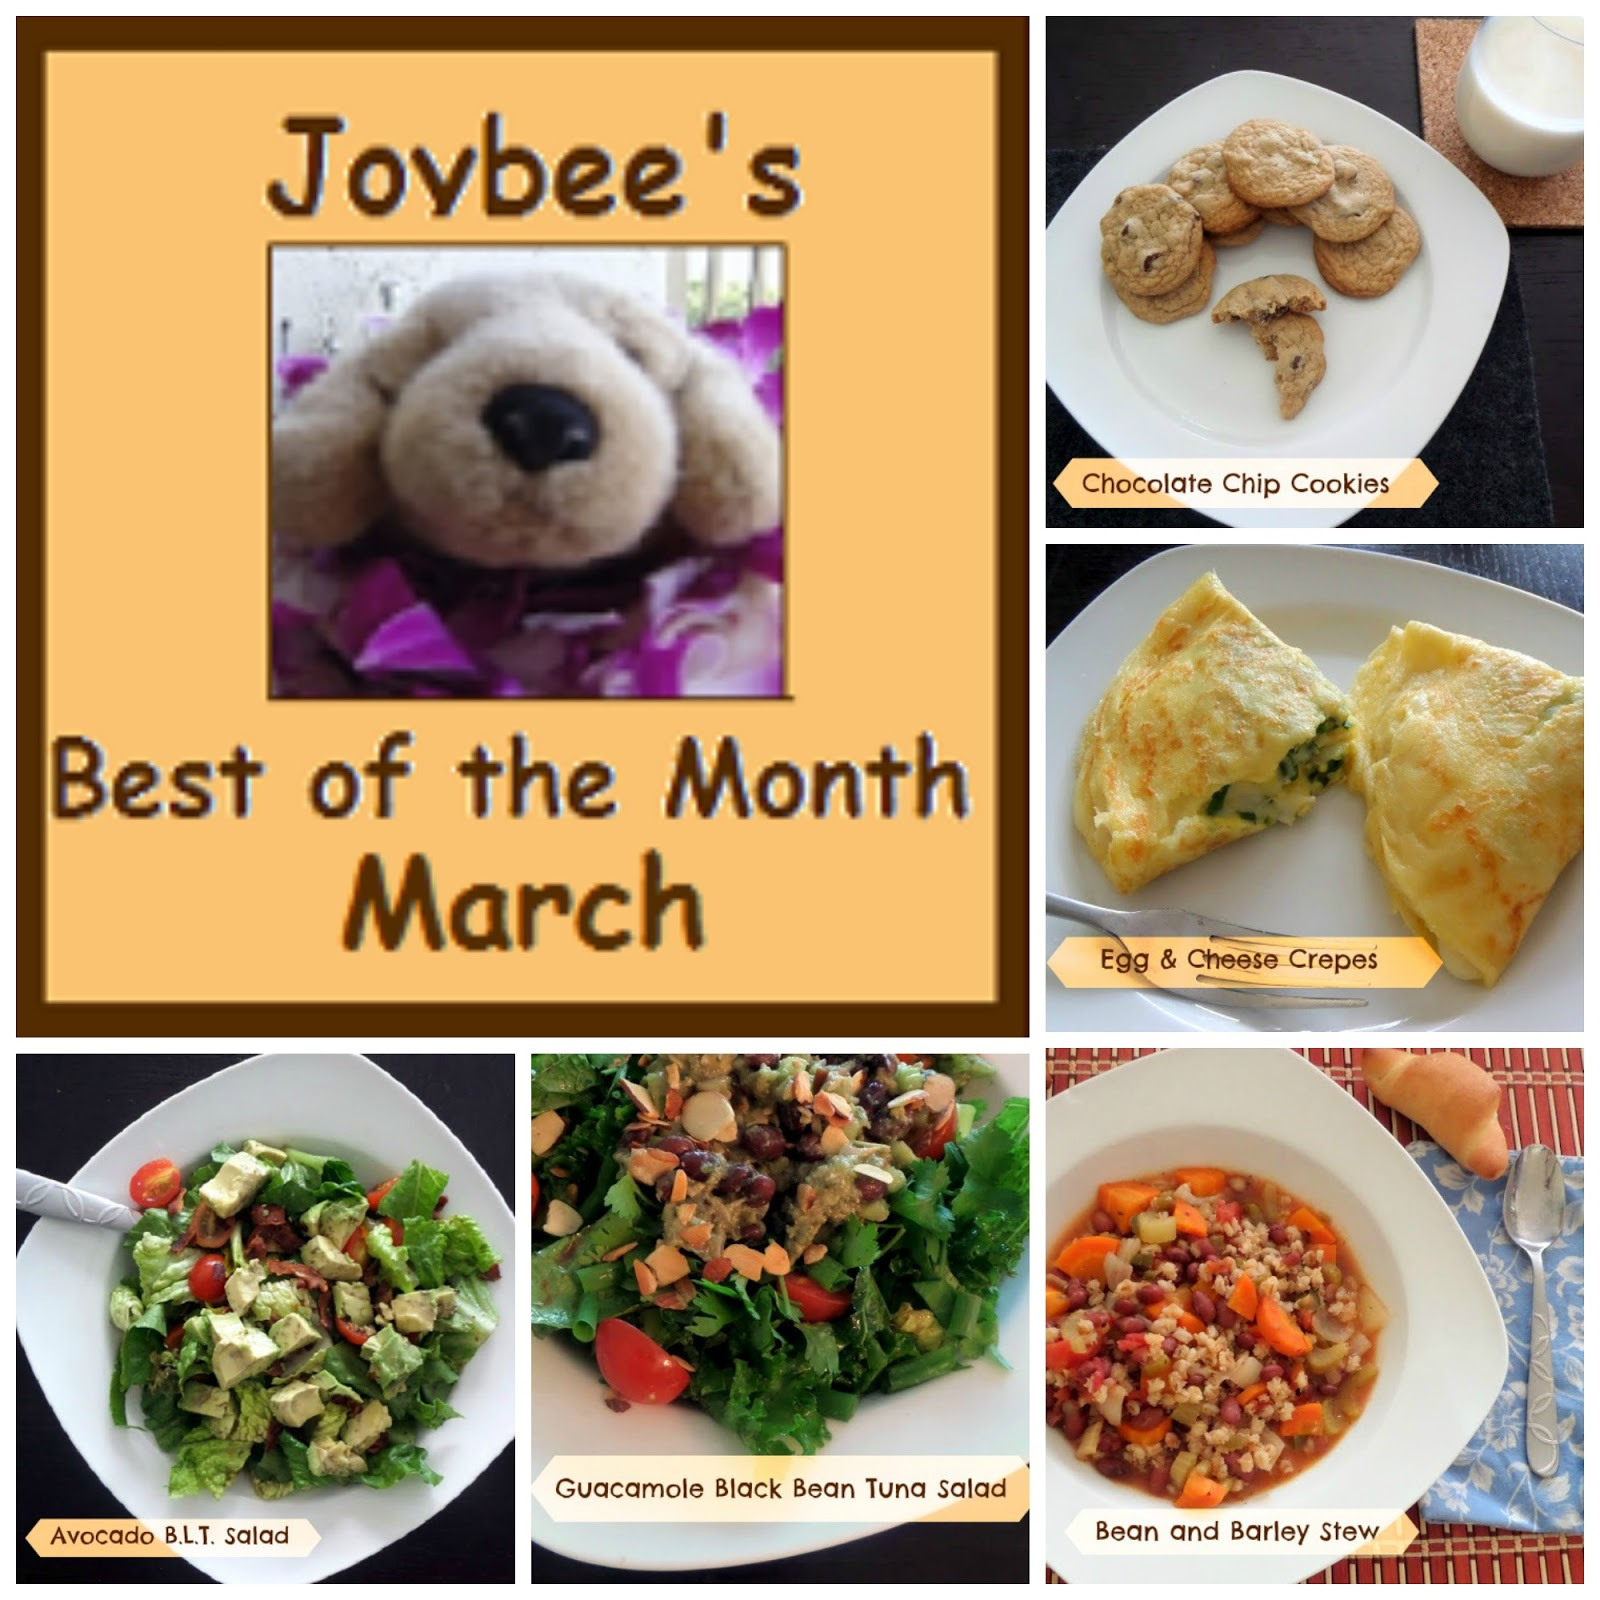 Best of the Month March 2014:  A recap of my most popular recipes in March 2014